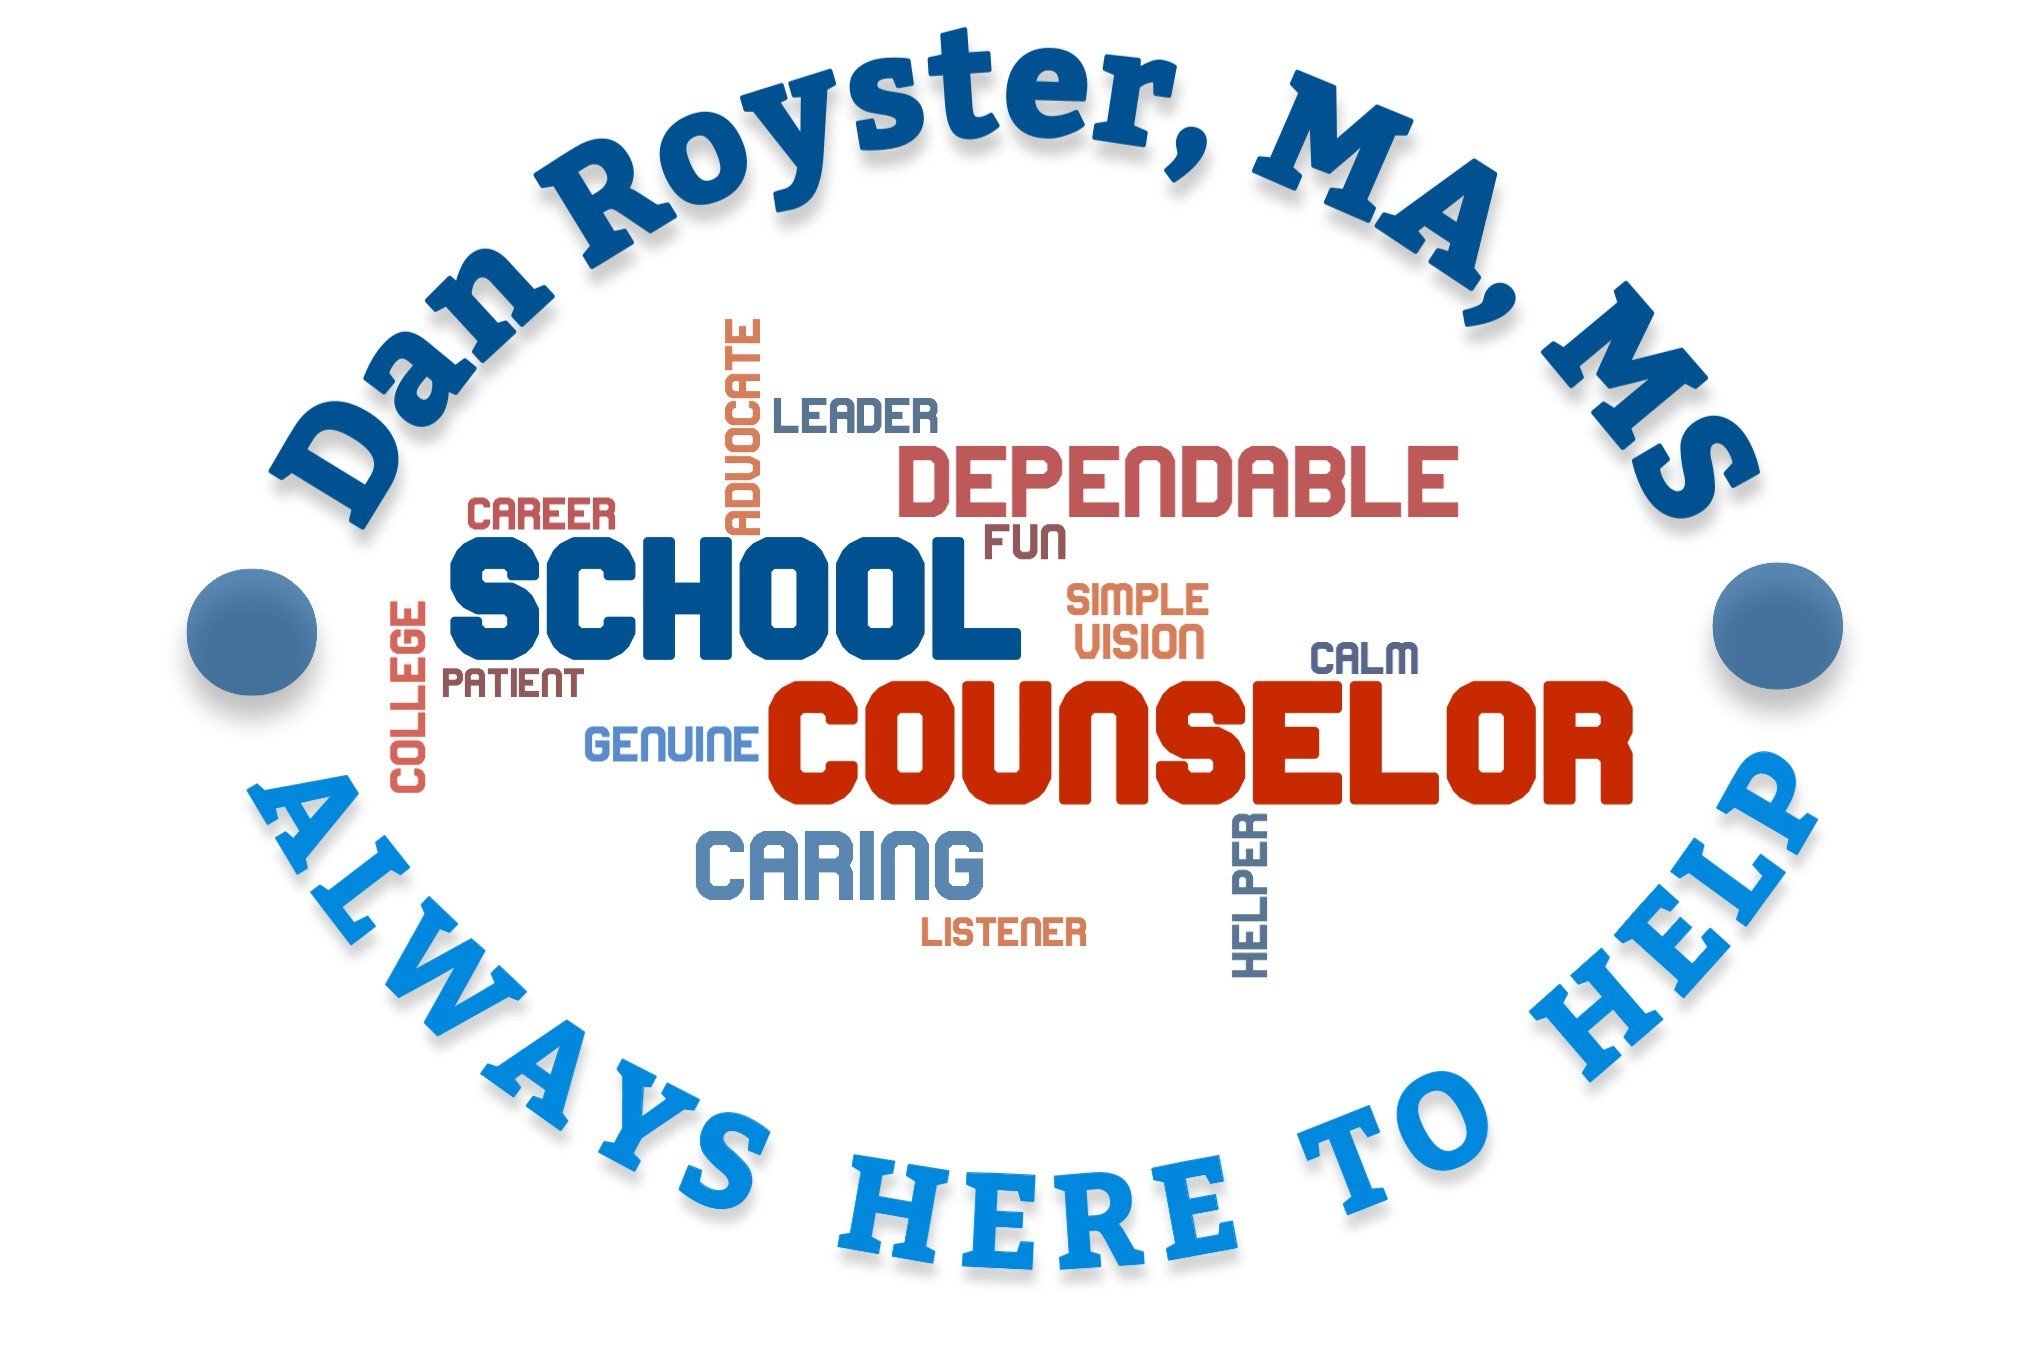 Dan Royster Ma Ms School Counseling